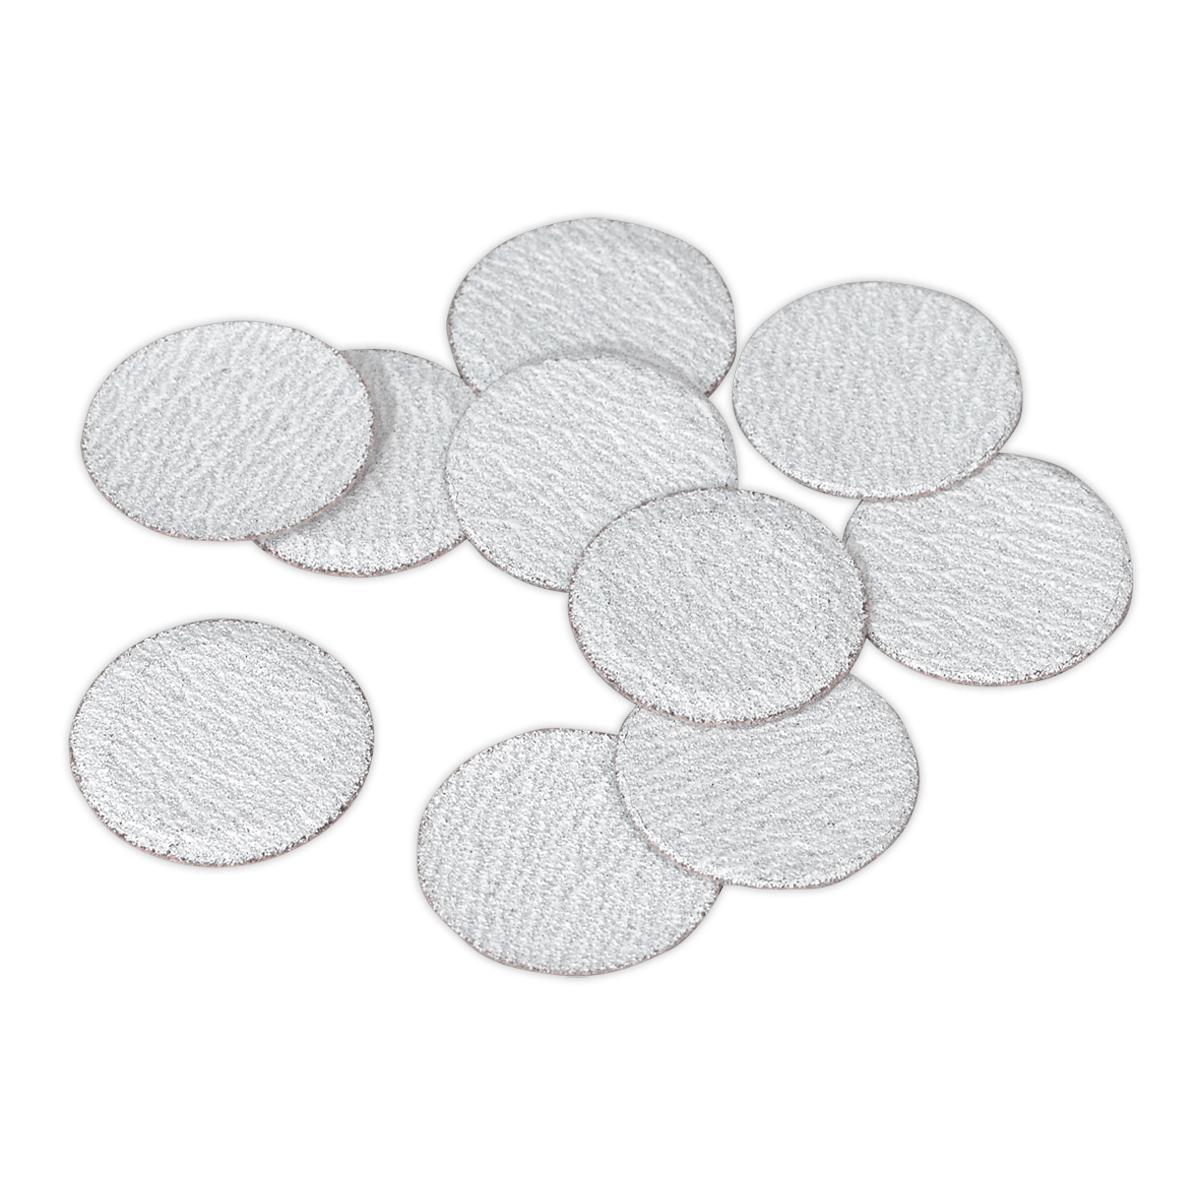 Sealey Sanding Disc Ø50mm 60Grit Pack of 10 SA701D60G   Hook-and-loop sanding discs for use with Sealey and other makes of mini air sanders.   toolforce.ie